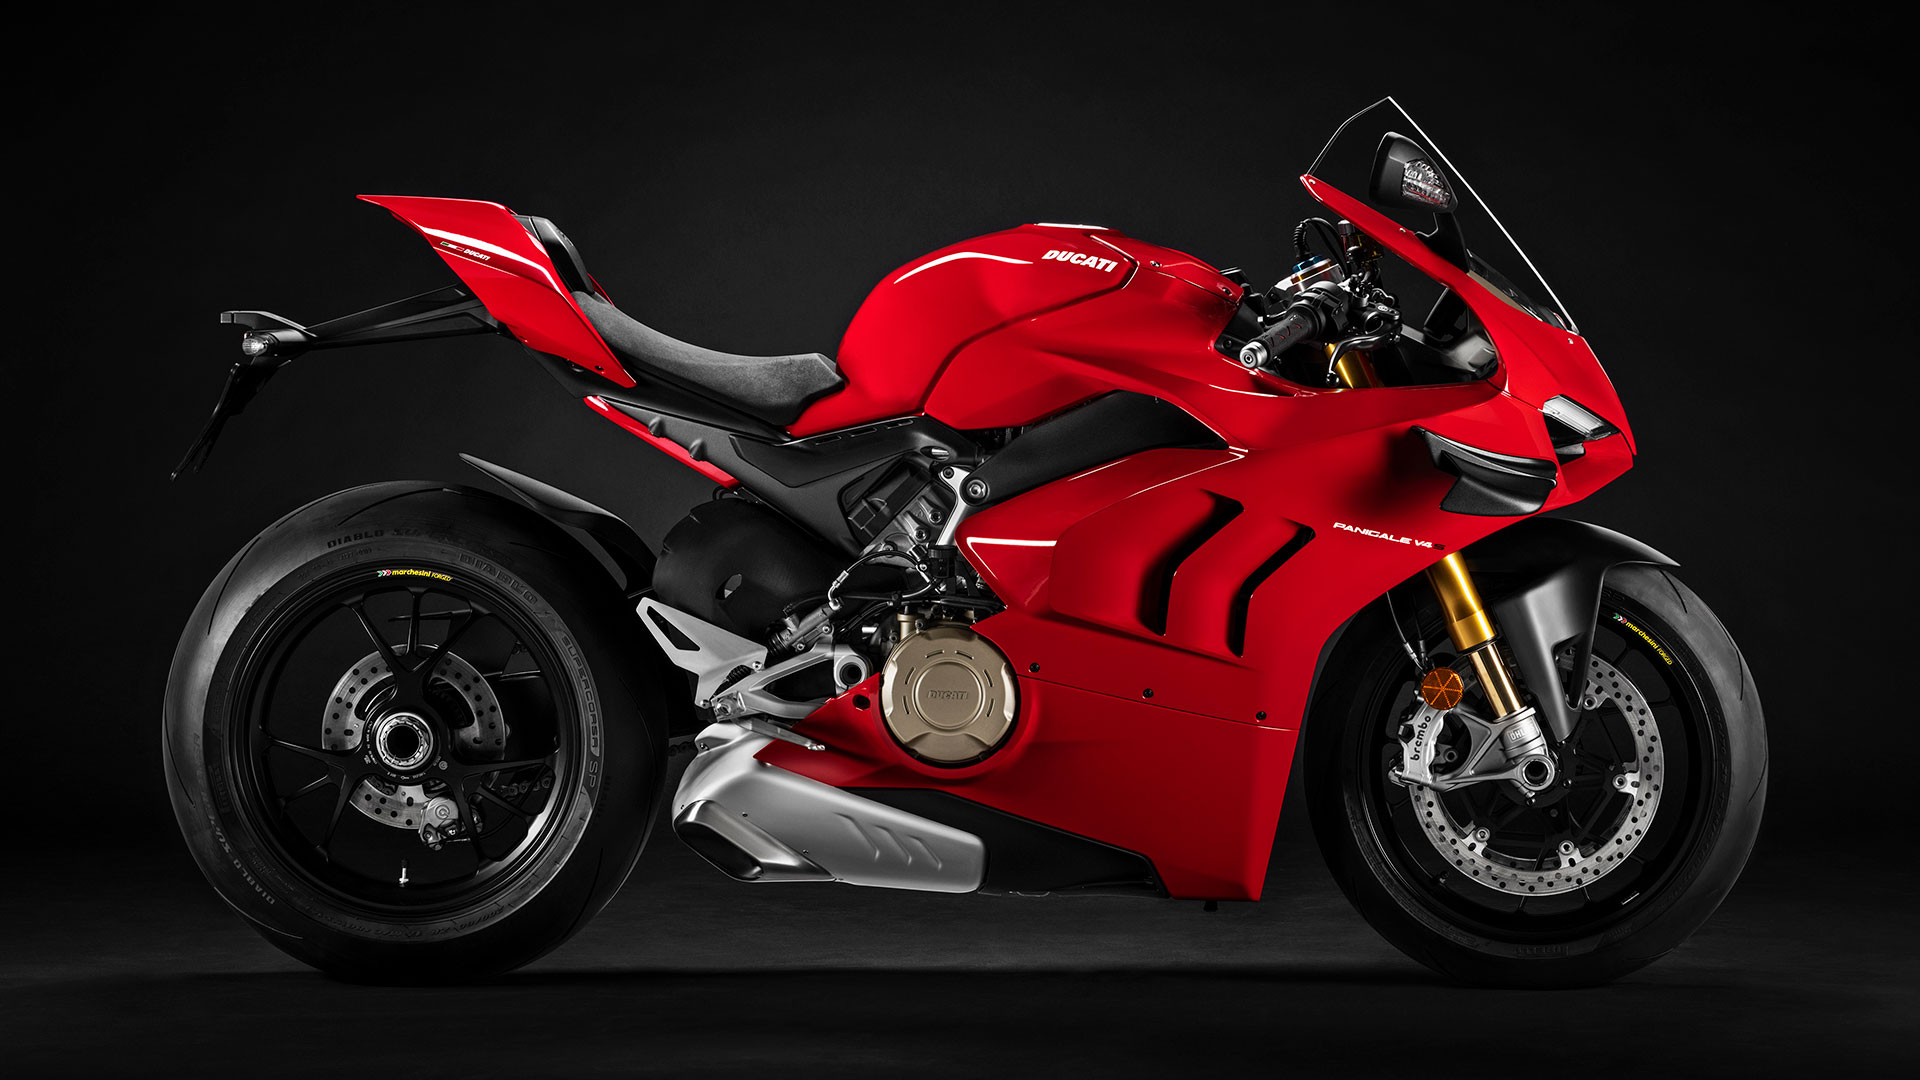 &laquo Panigale V4 S &raquo  The Science of Speed